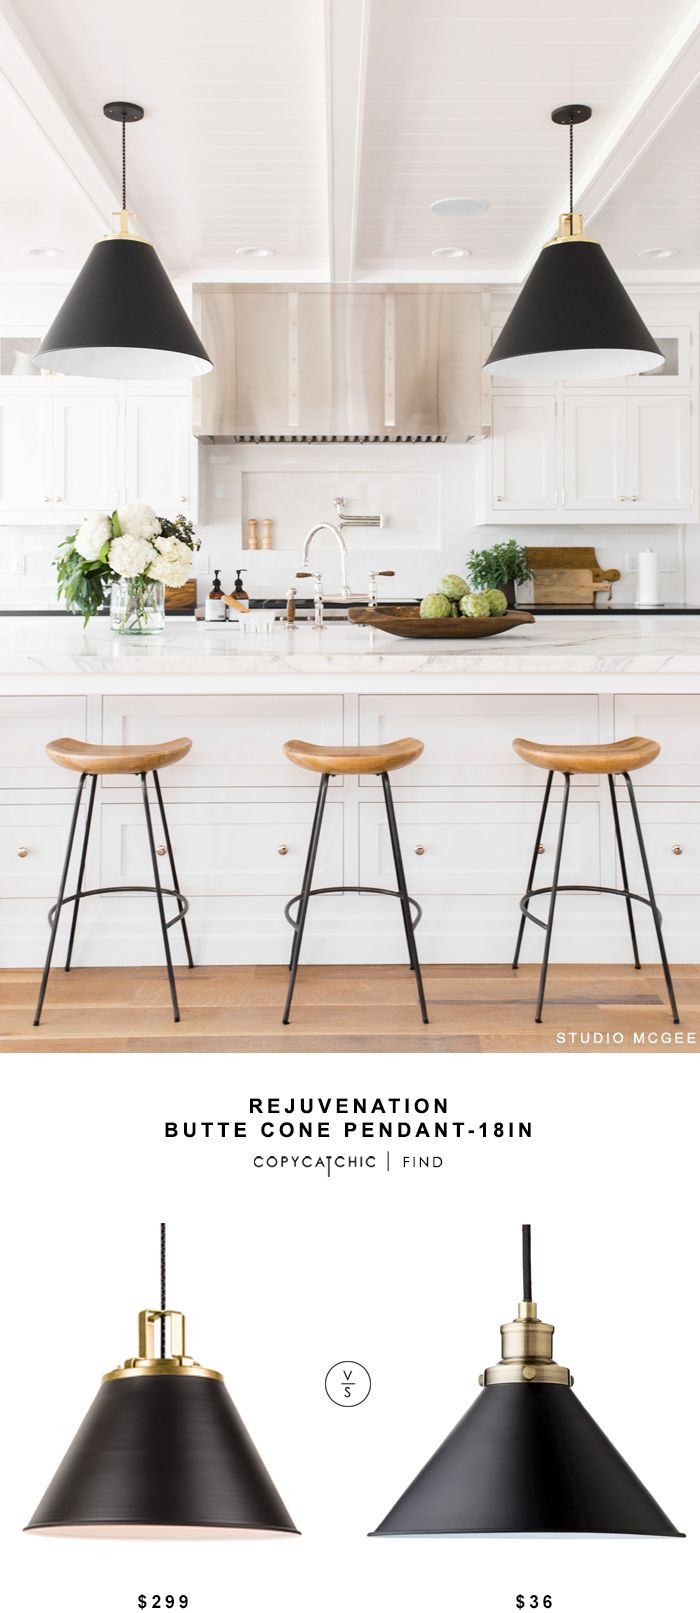 Rejuvenation Butte Cone Pendant for $299 vs Target Crosby Small pendant for $36 @copycatchic look for less budget home decor and design chic find http://www.copycatchic.com/2016/10/rejuvenation-butte-cone-pendant.html?utm_campaign=coschedule&utm_source=pinterest&utm_medium=Copy%20Cat%20Chic&utm_content=Rejuvenation%20Butte%20Cone%20Pendant